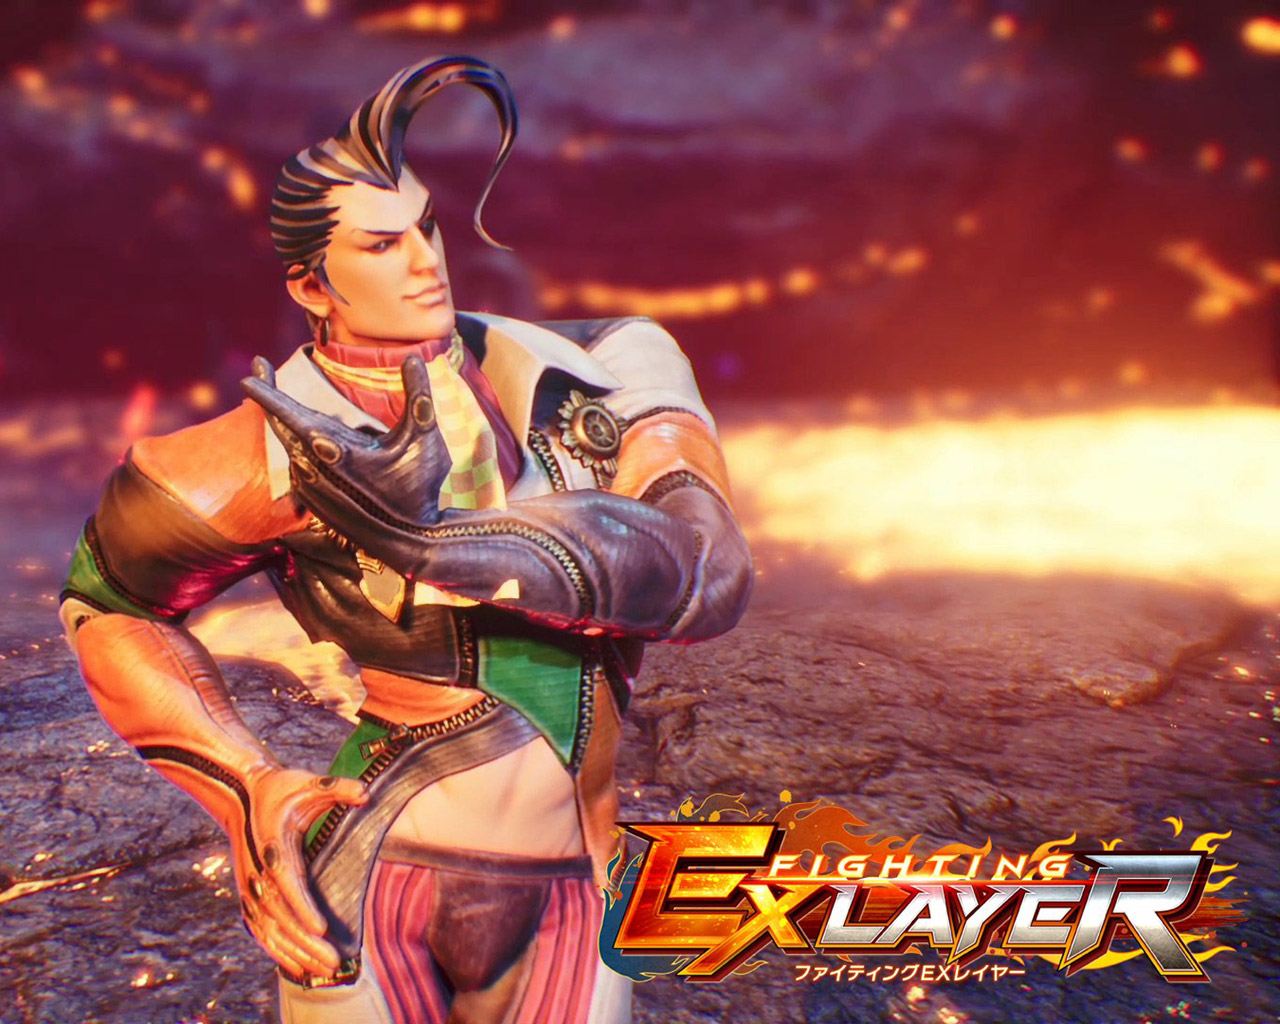 Free Fighting EX Layer Wallpaper in 1280x1024